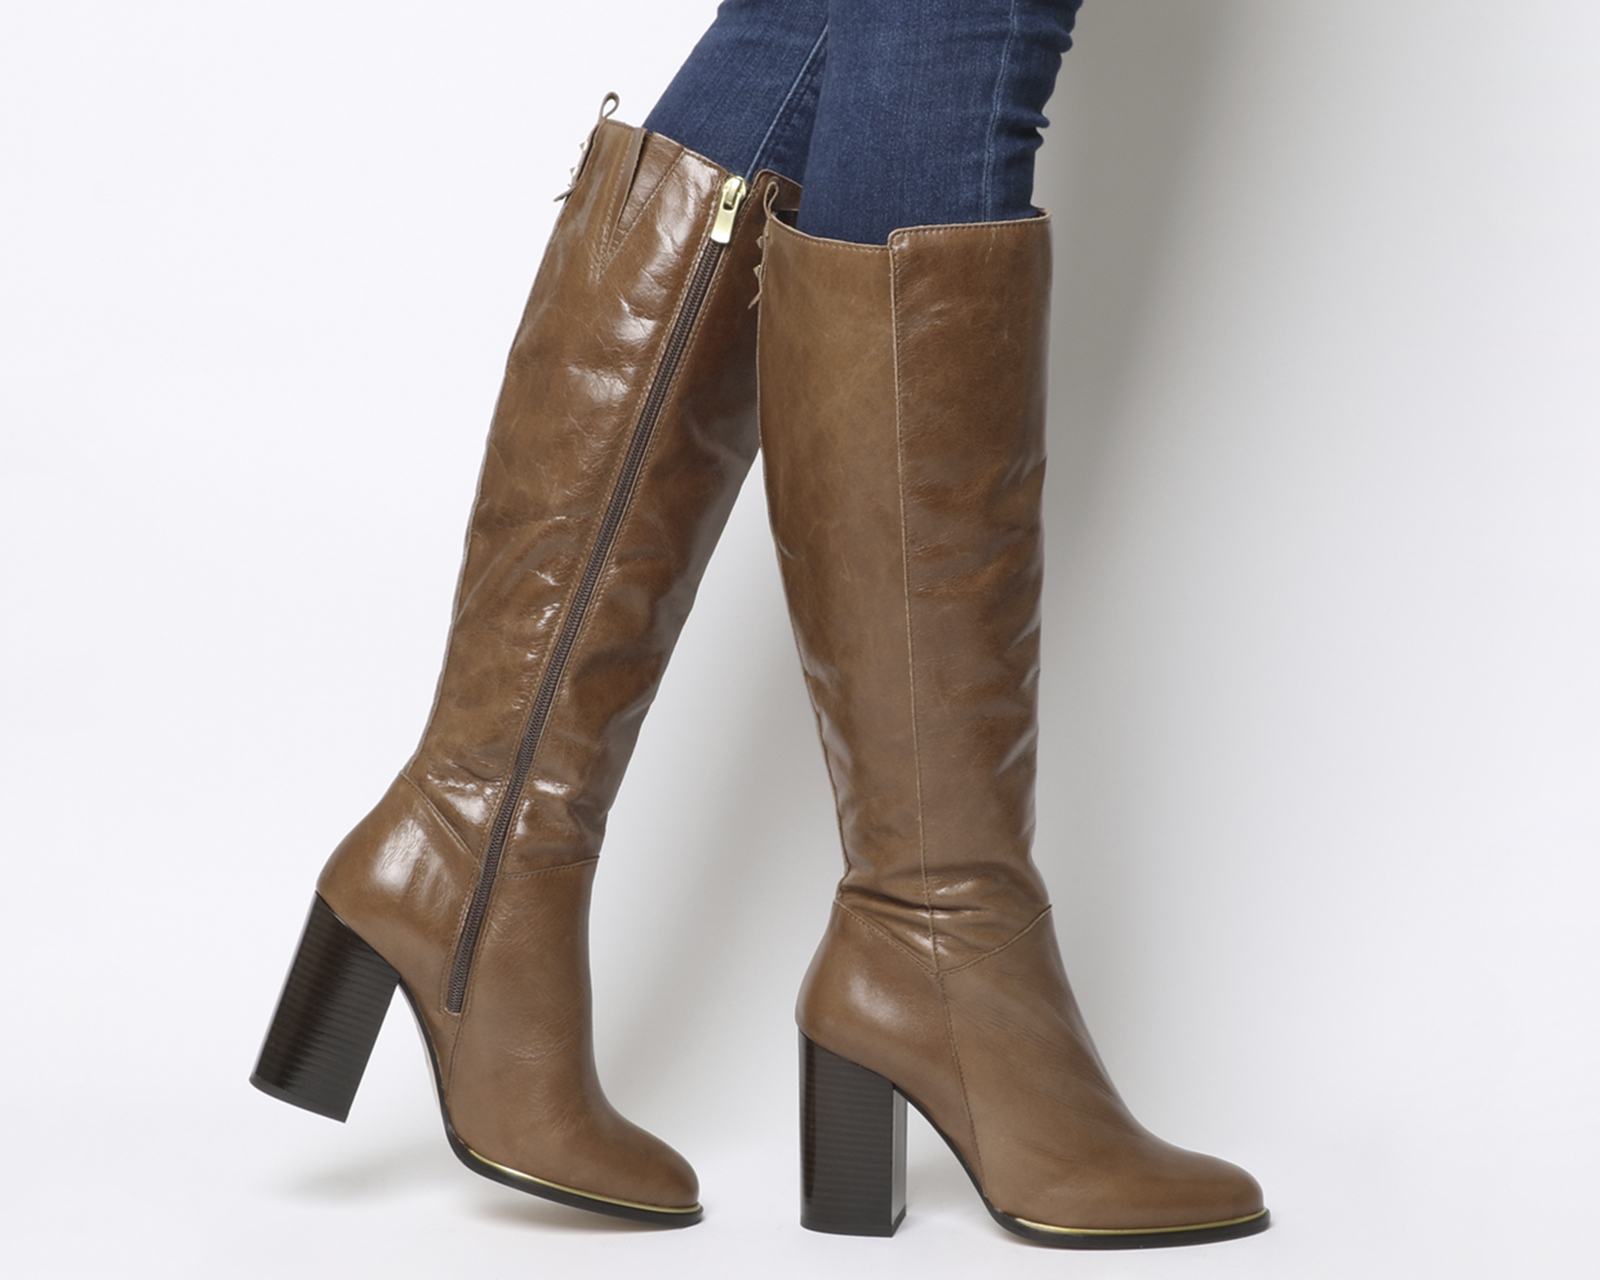 6c90be79a95e Sentinel Womens Office Kirby Smart Block Heel Knee Boots Tan Leather Boots